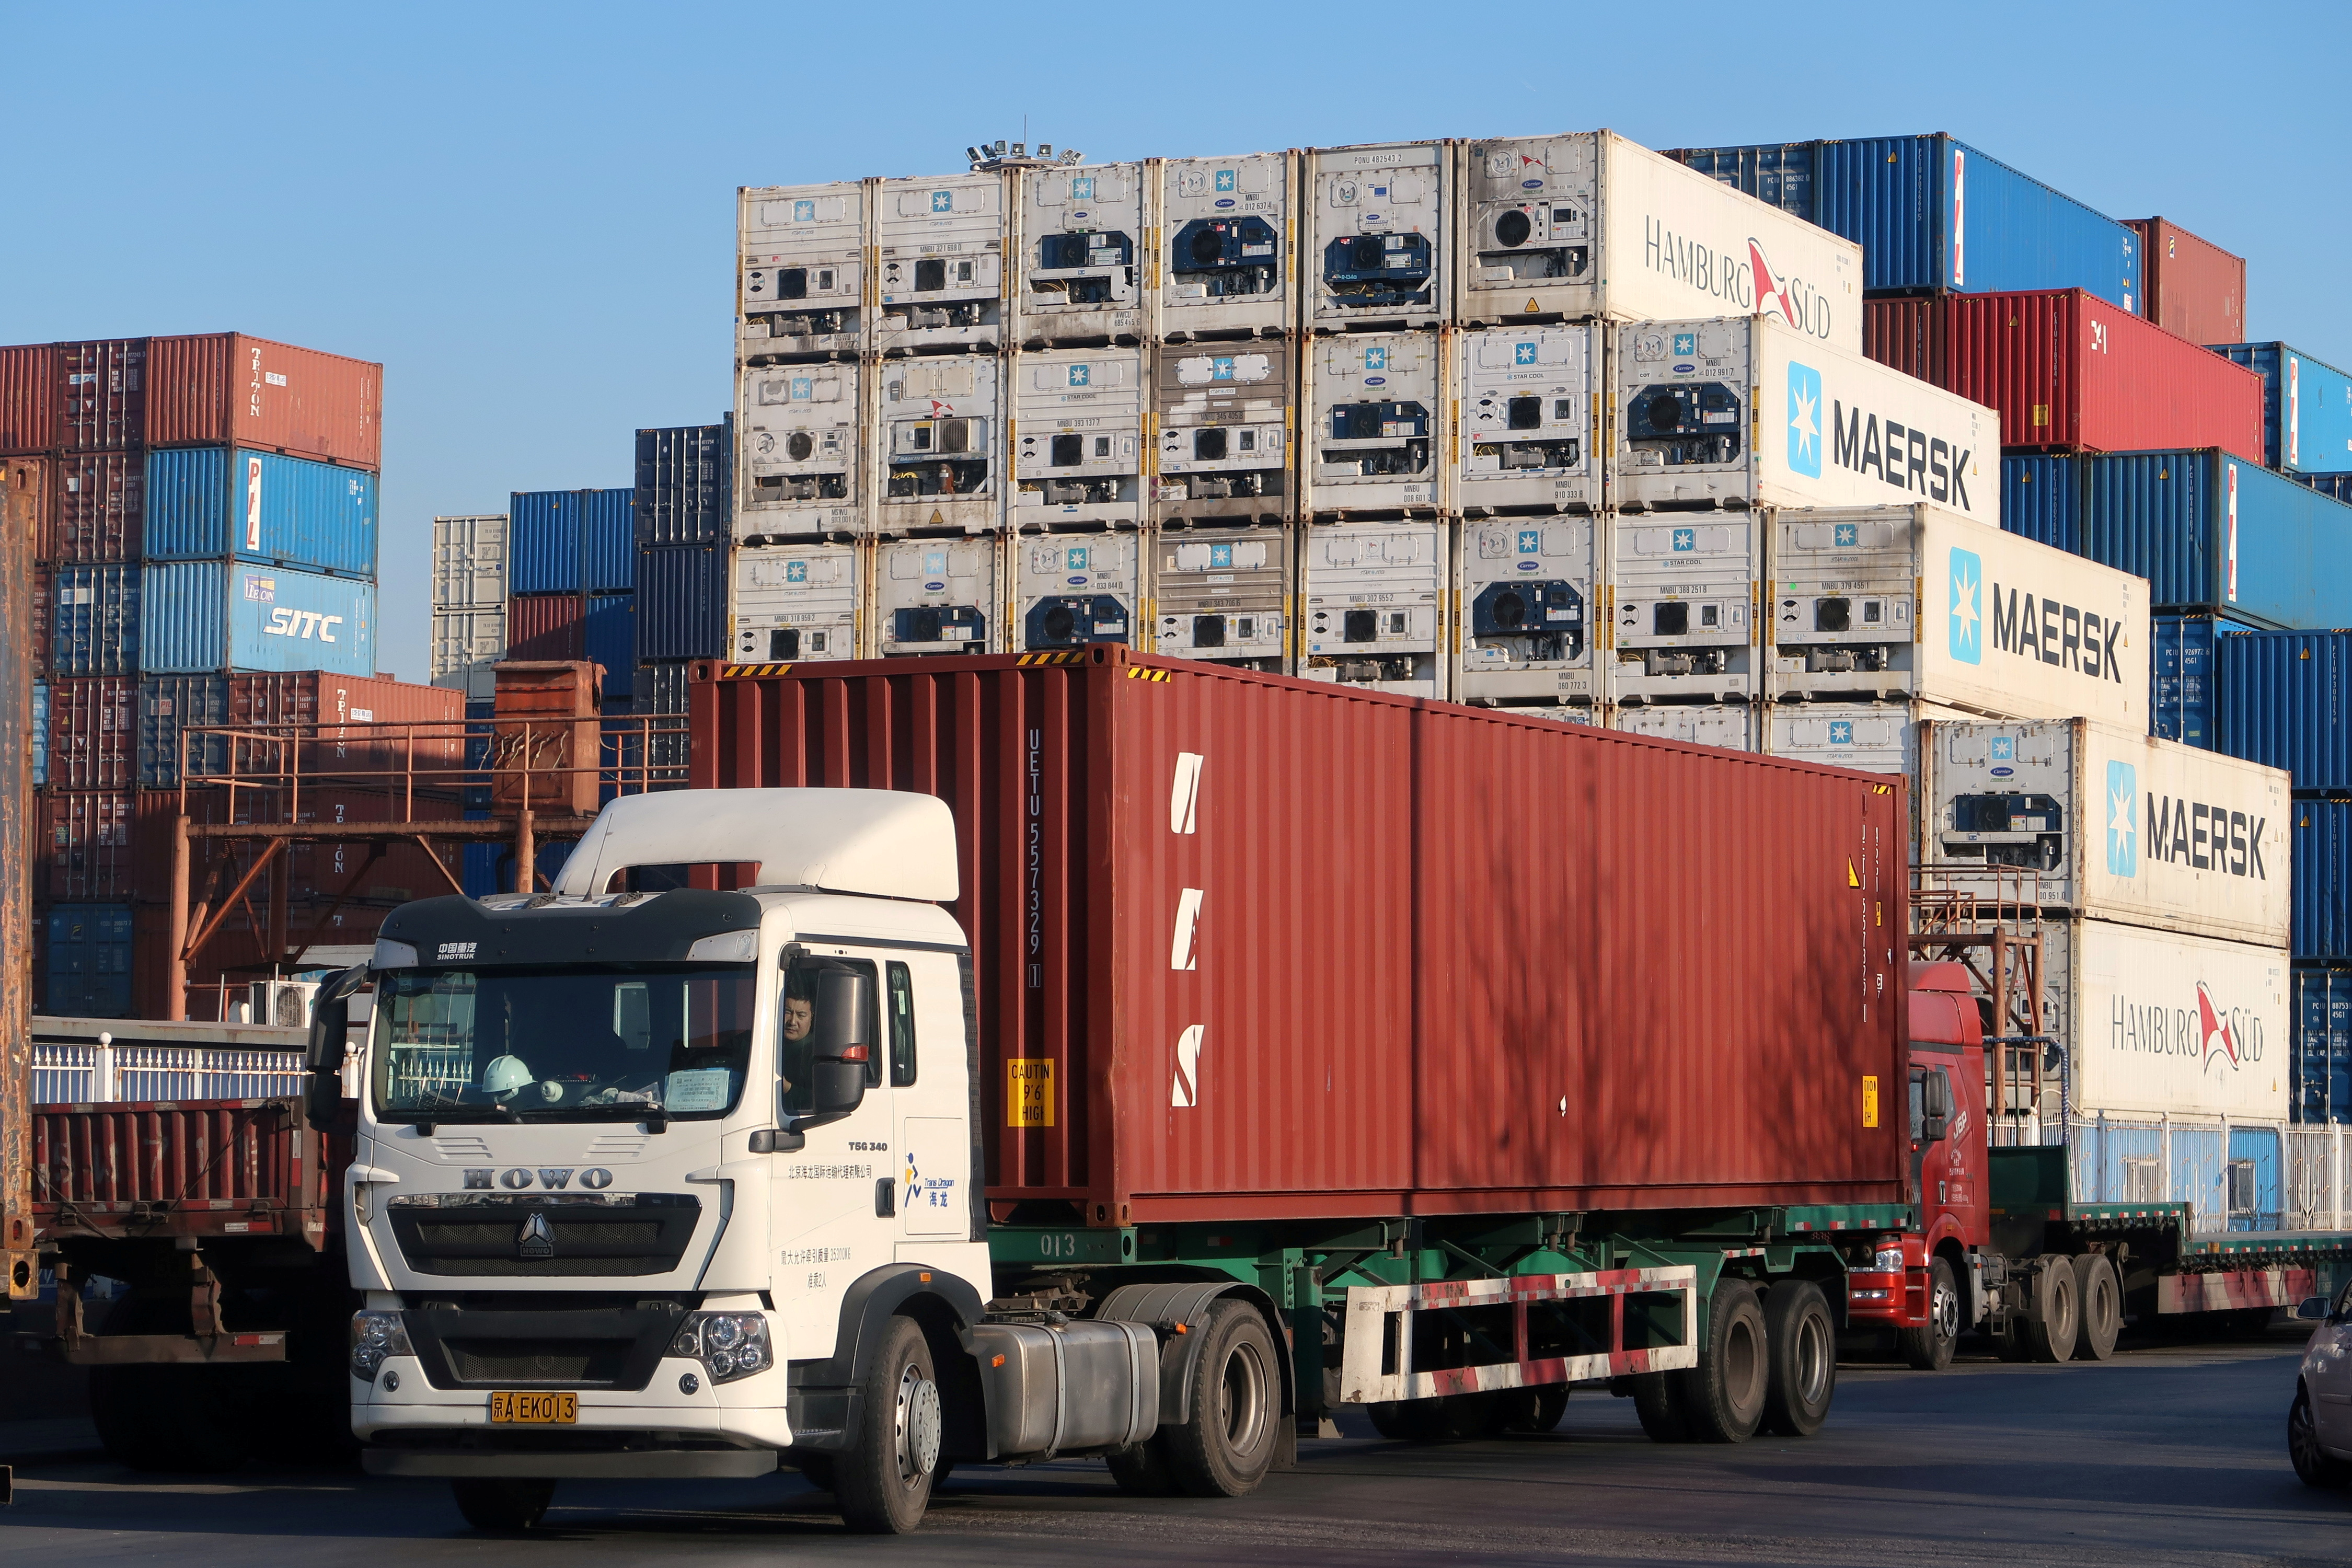 A worker drives a truck carrying a container at a logistics center near Tianjin port, in Tianjin, China December 12, 2019. REUTERS/Yilei Sun